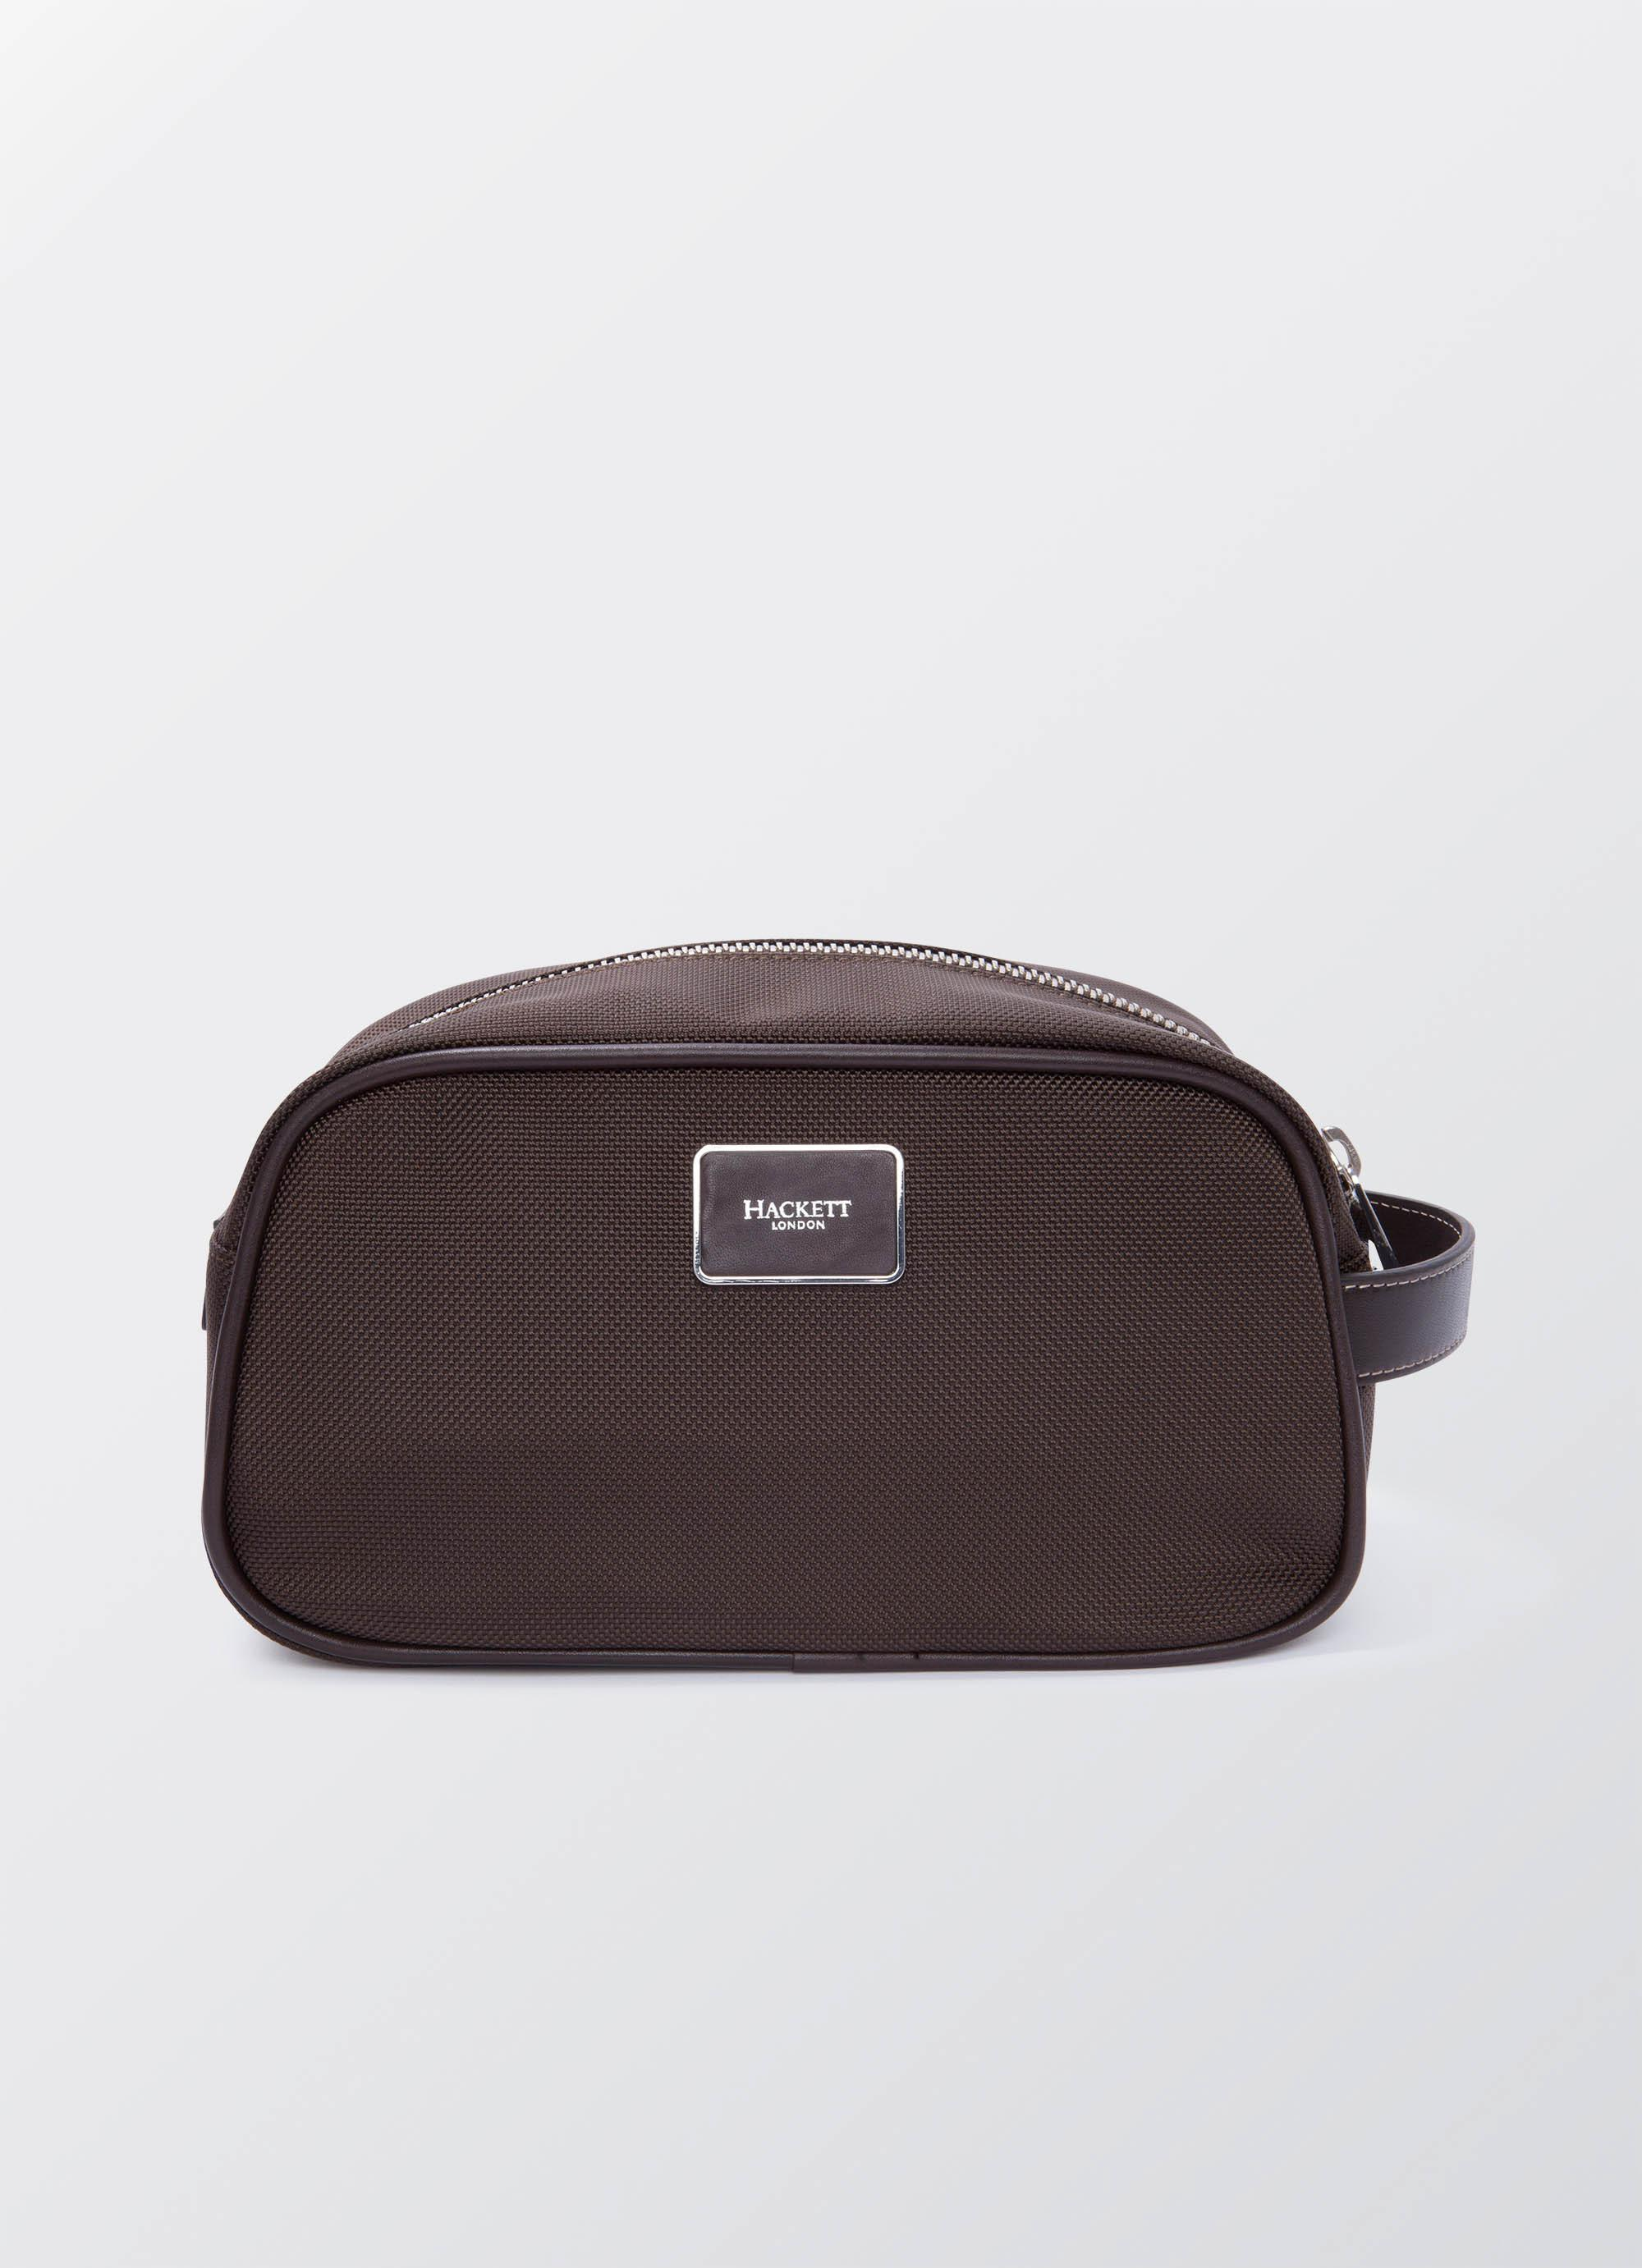 61a12b23cf Hackett New Utility Wash Bag in Brown for Men - Lyst